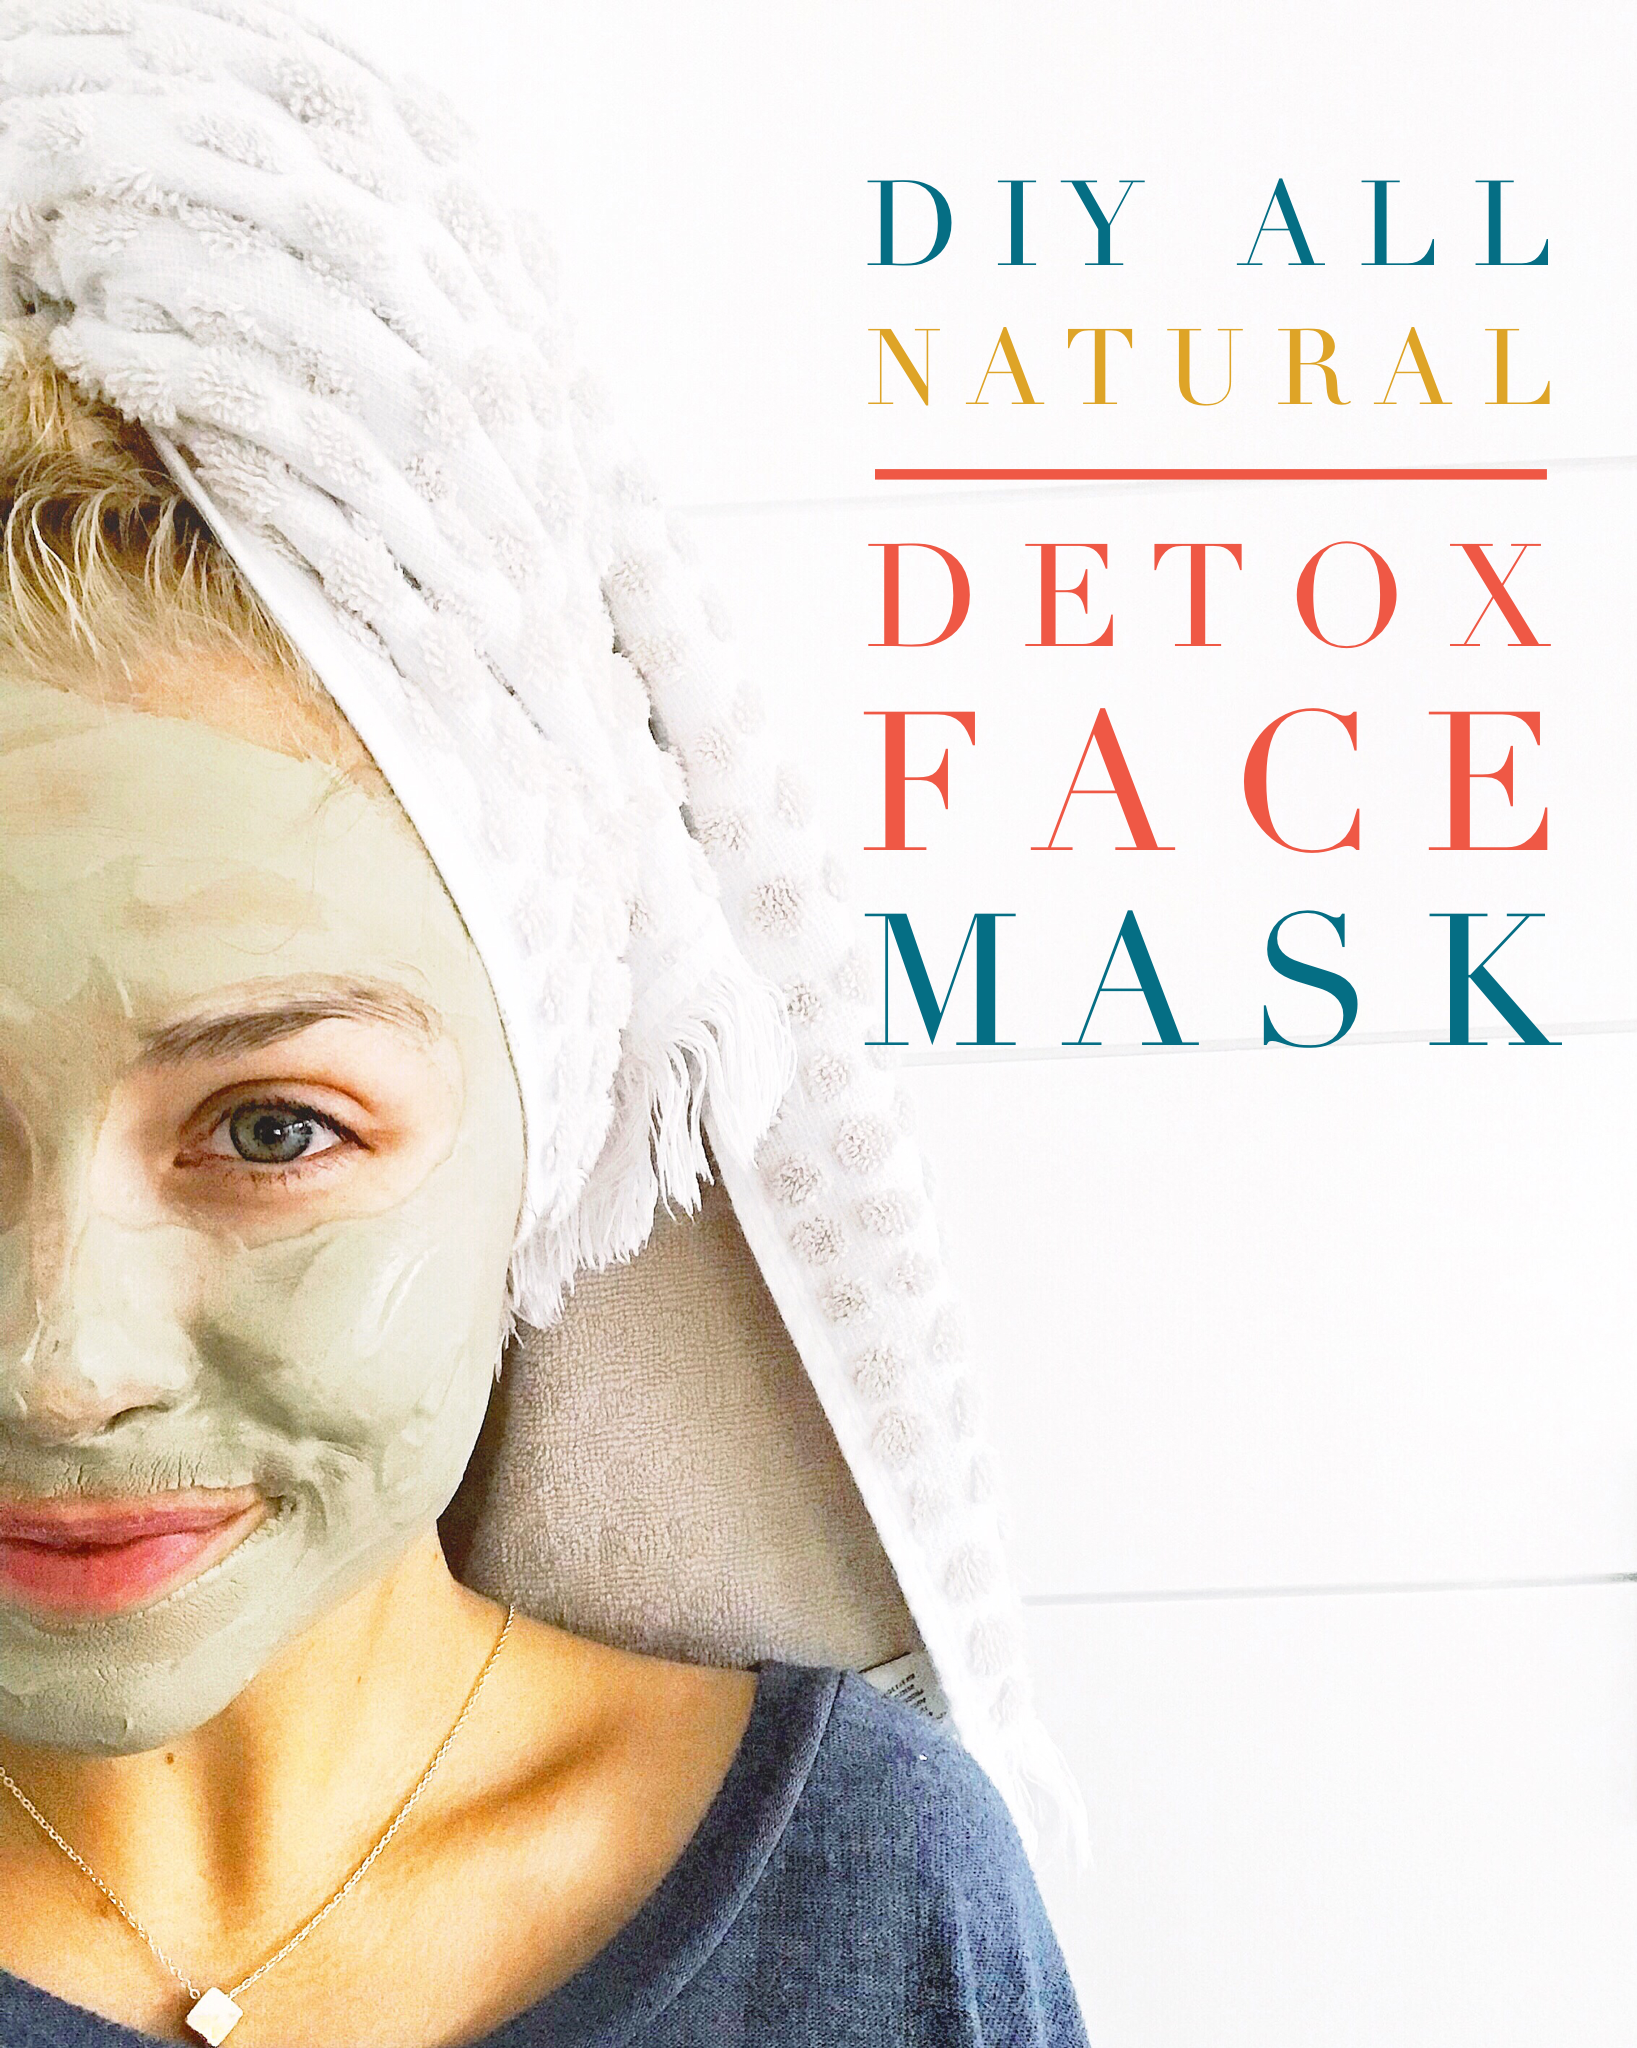 Chemical free clay mask for ultimate natural skincare